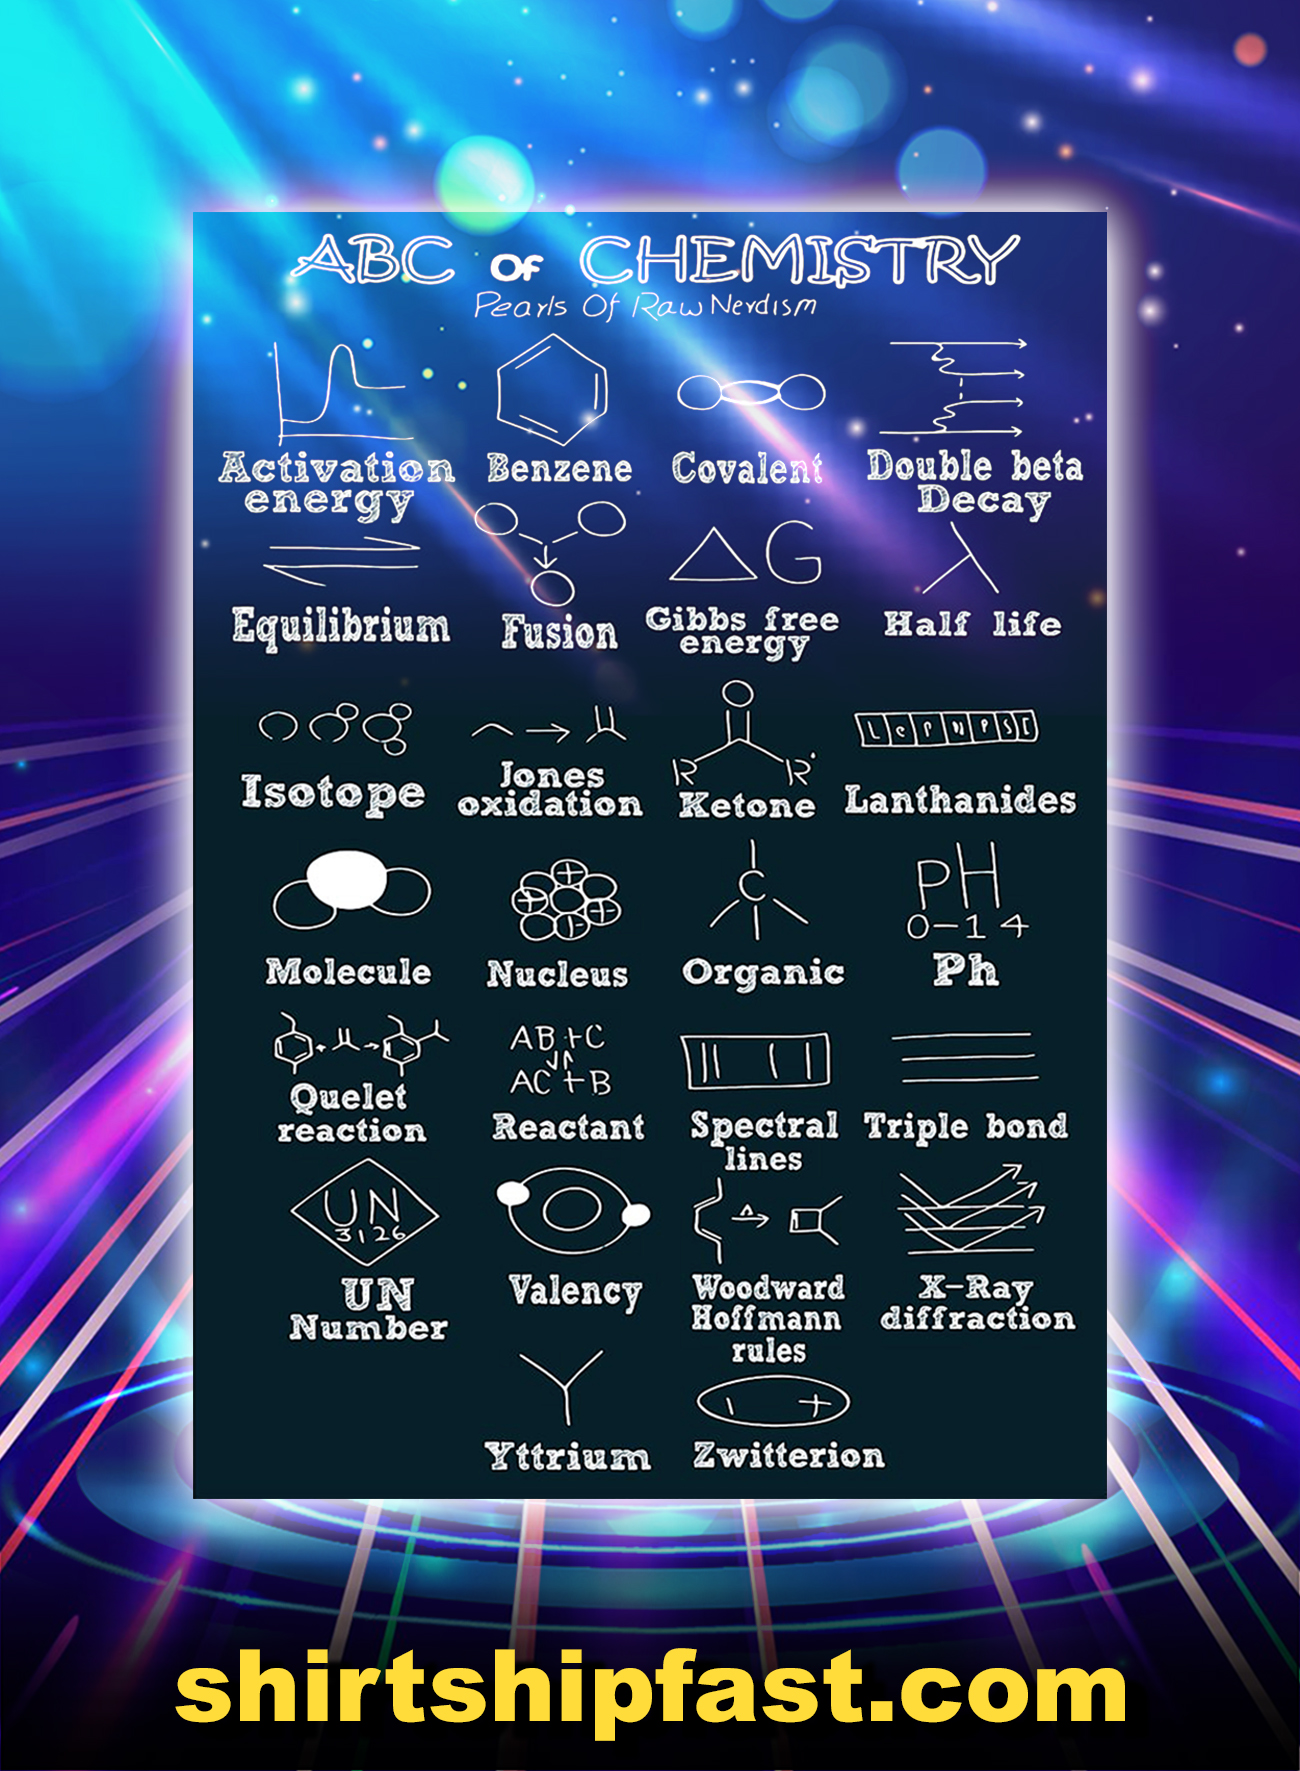 Abc of chemistry poster - A1